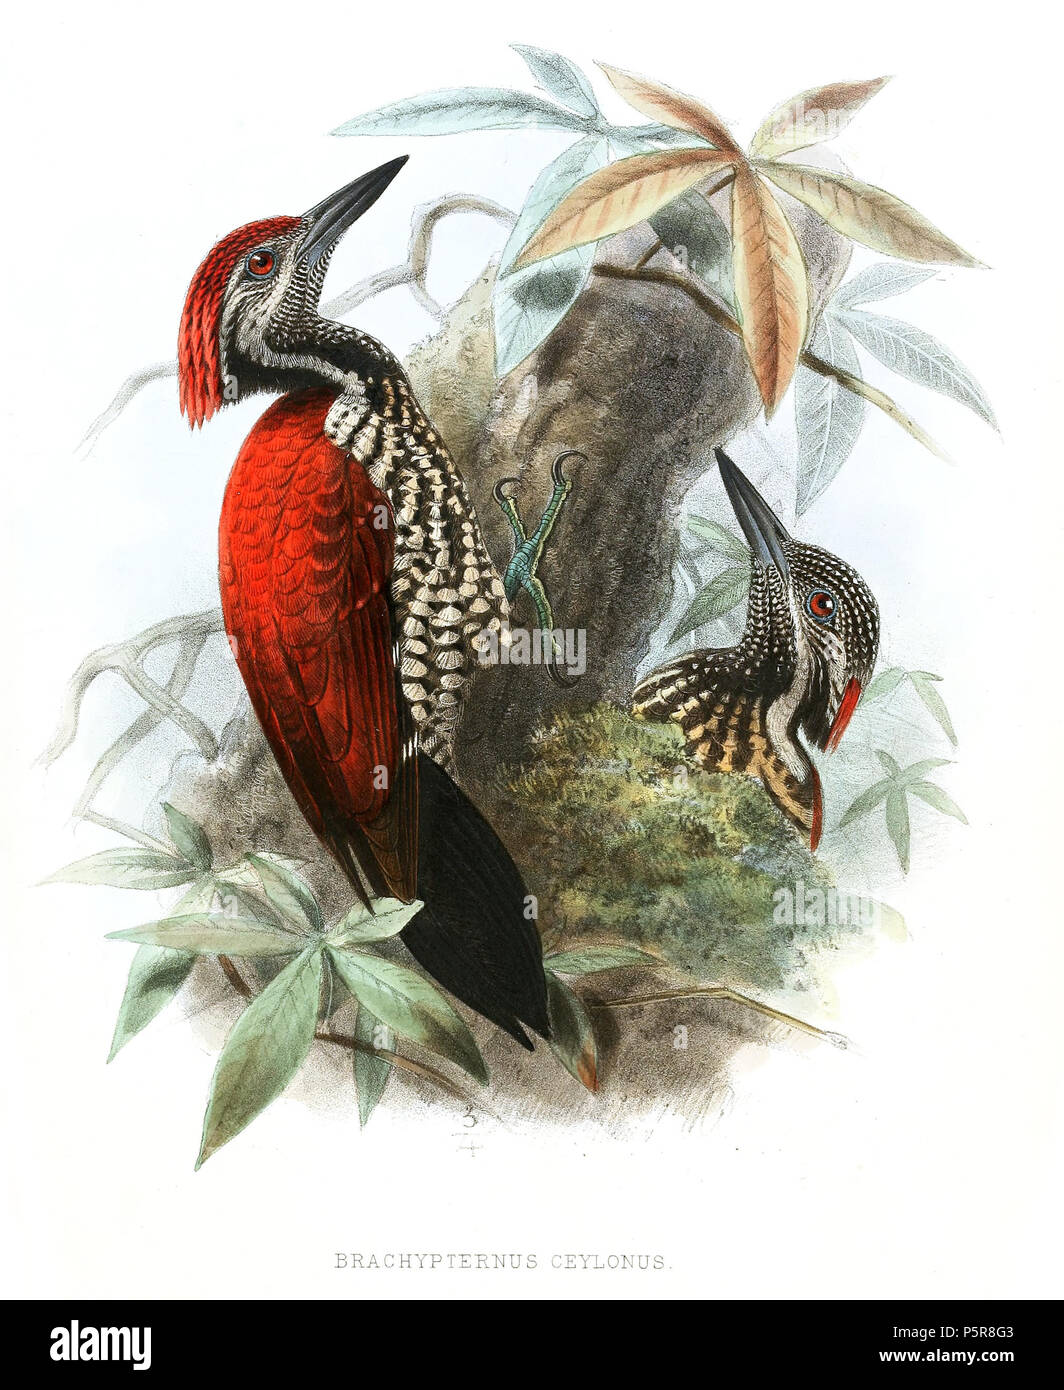 N/A. Brachypternus ceylons=Chrysocolaptes stricklandi . 1878.   John Gerrard Keulemans  (1842–1912)      Alternative names Johannes Gerardus Keulemans; J. G. Keulemans  Description Dutch ornithologist and artist  Date of birth/death 8 June 1842 29 December 1912  Location of birth/death Rotterdam London  Authority control  : Q1335286 VIAF:42113661 ISNI:0000 0000 6313 981X ULAN:500041975 LCCN:no98083374 NLA:35268760 WorldCat 228 BrachypternusCeylonusLegge - Stock Image